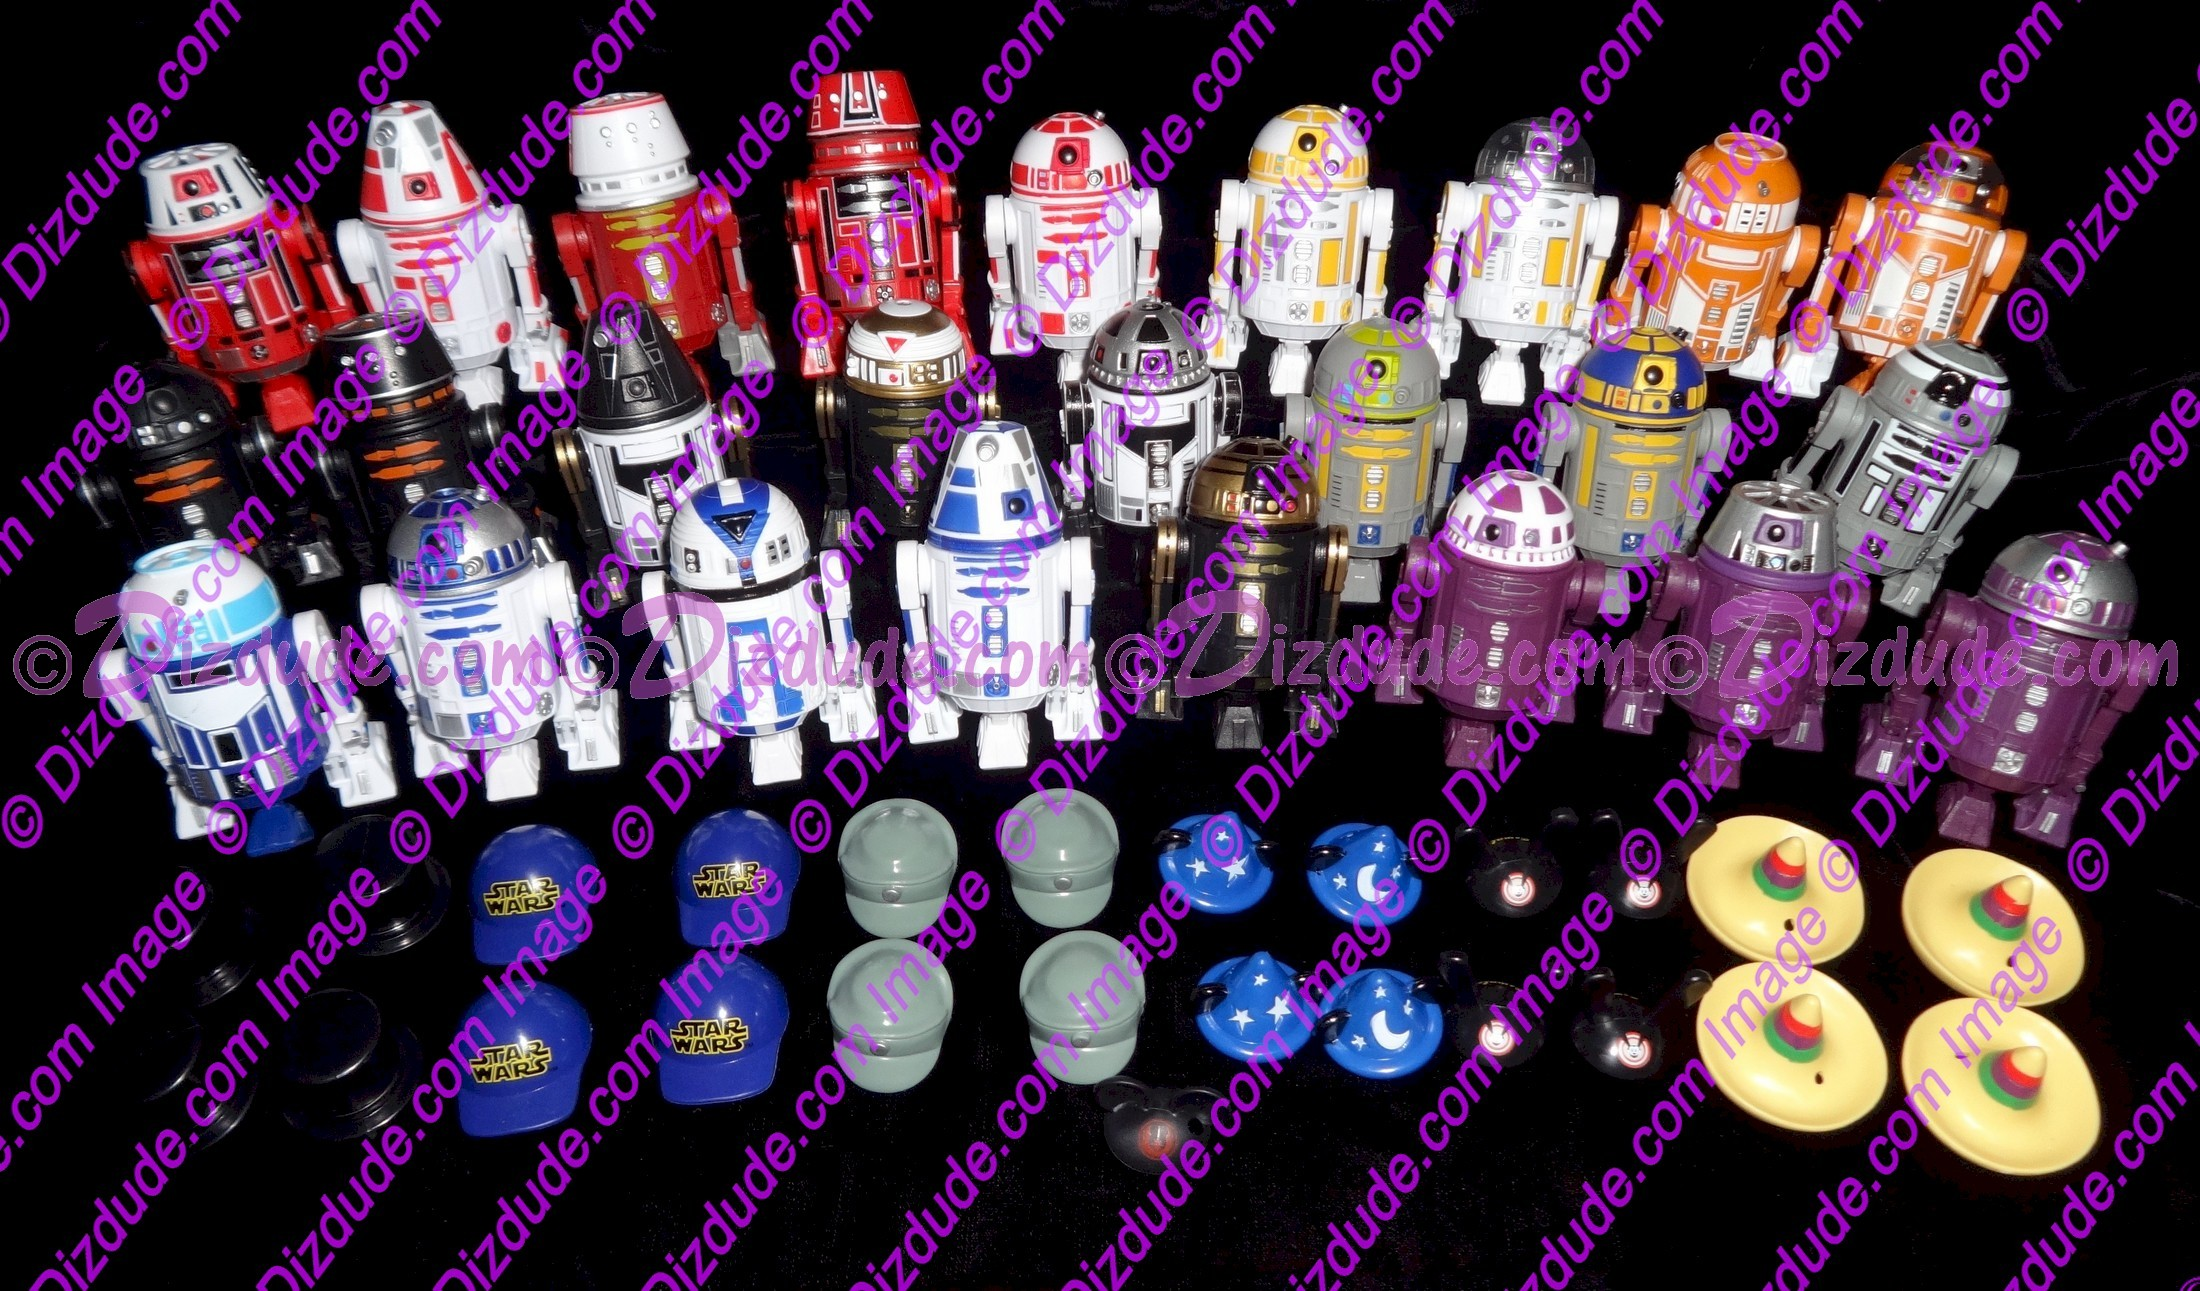 Full set of 25 droids Series 2